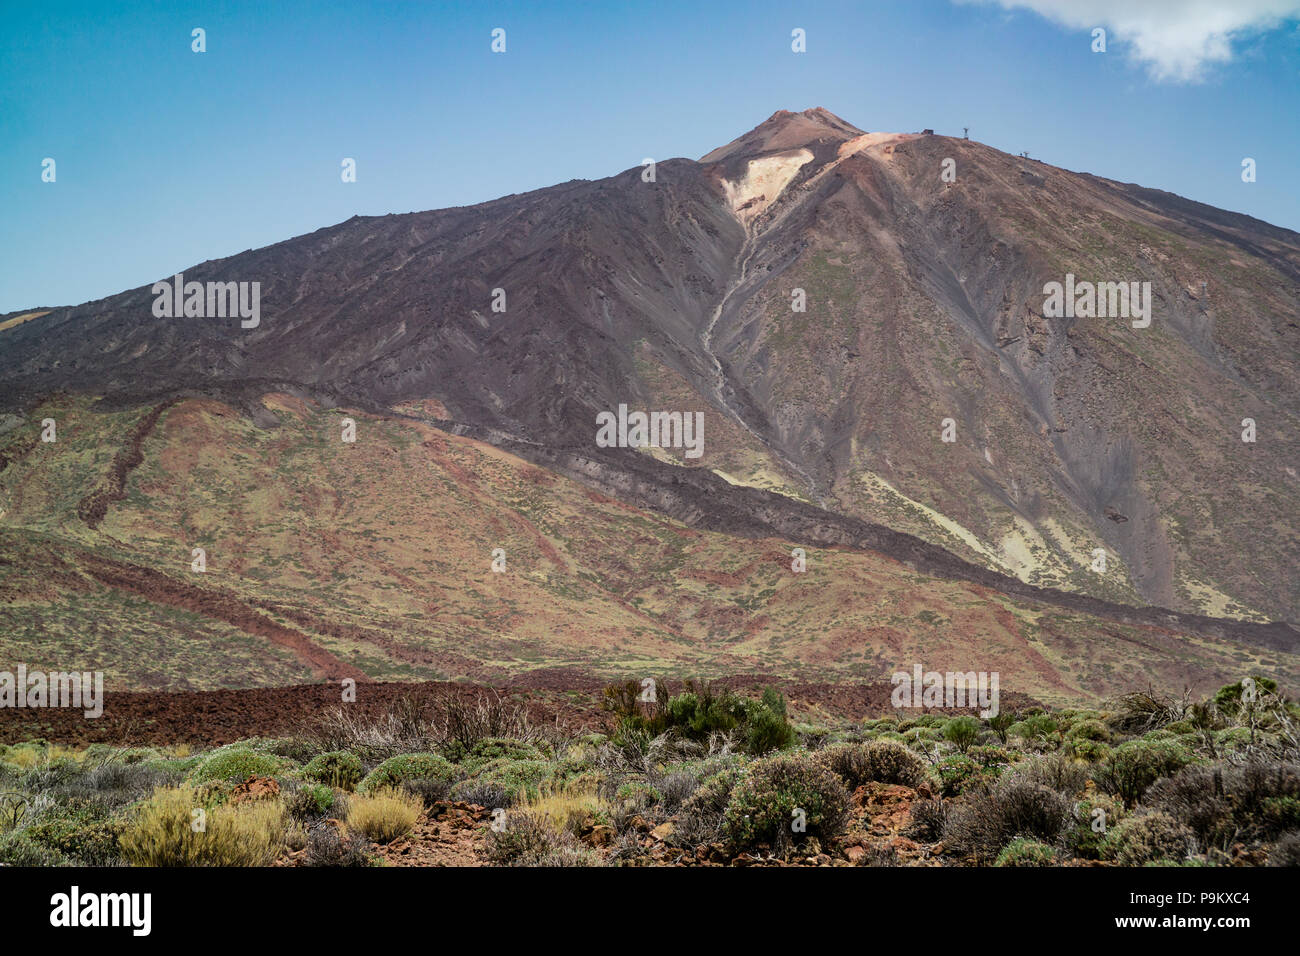 Mount Teide, a decade volcano in Tenerife, with arid scrubland and lava rocks in the foreground of the landscape. - Stock Image